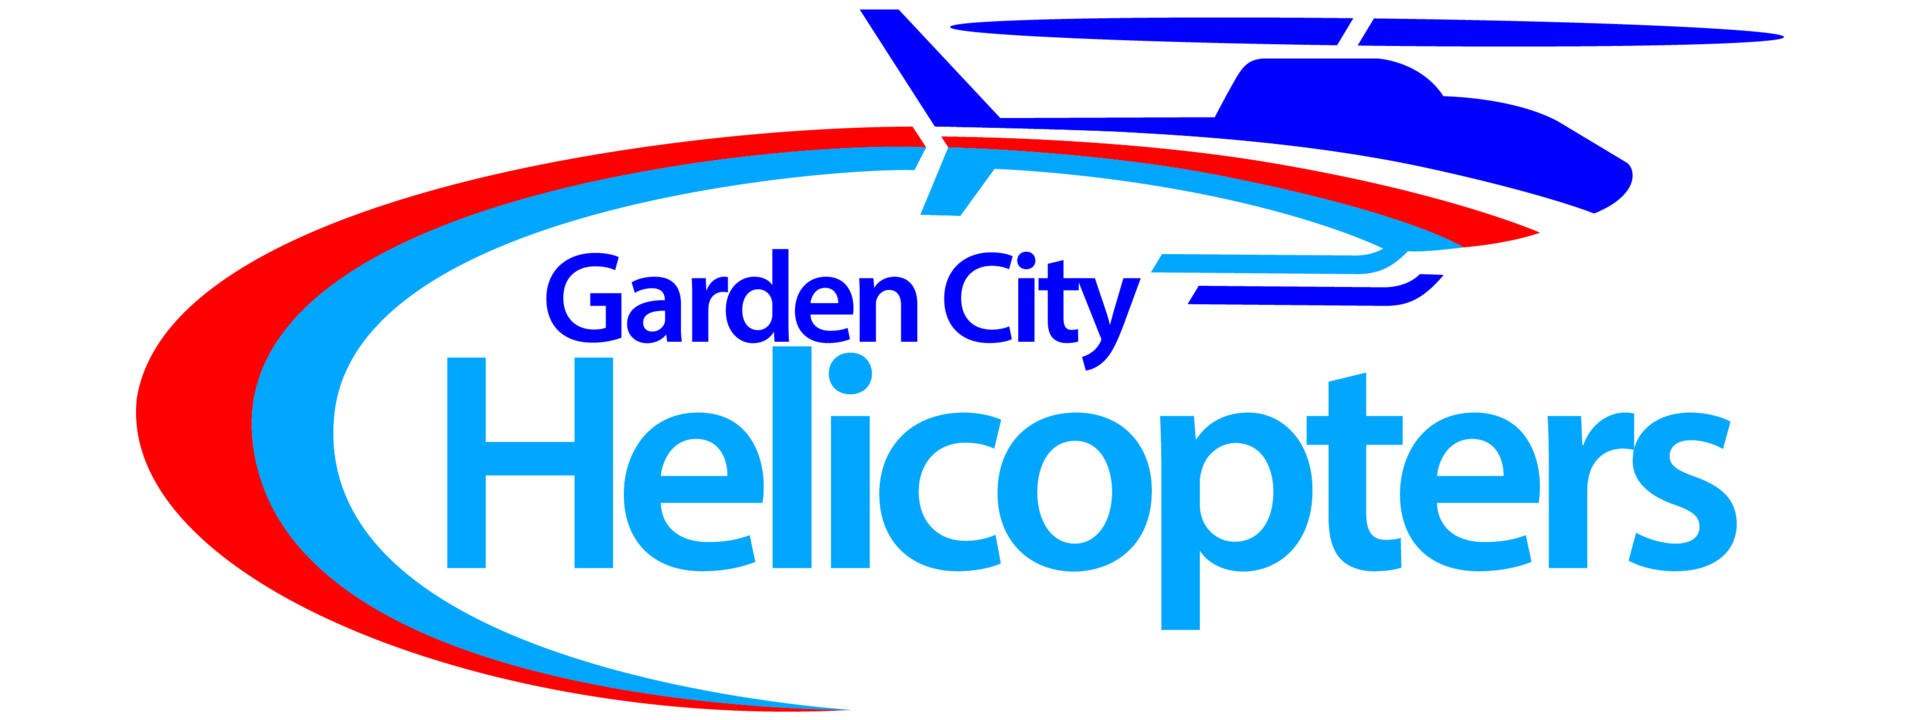 Logo: Garden City Helicopters